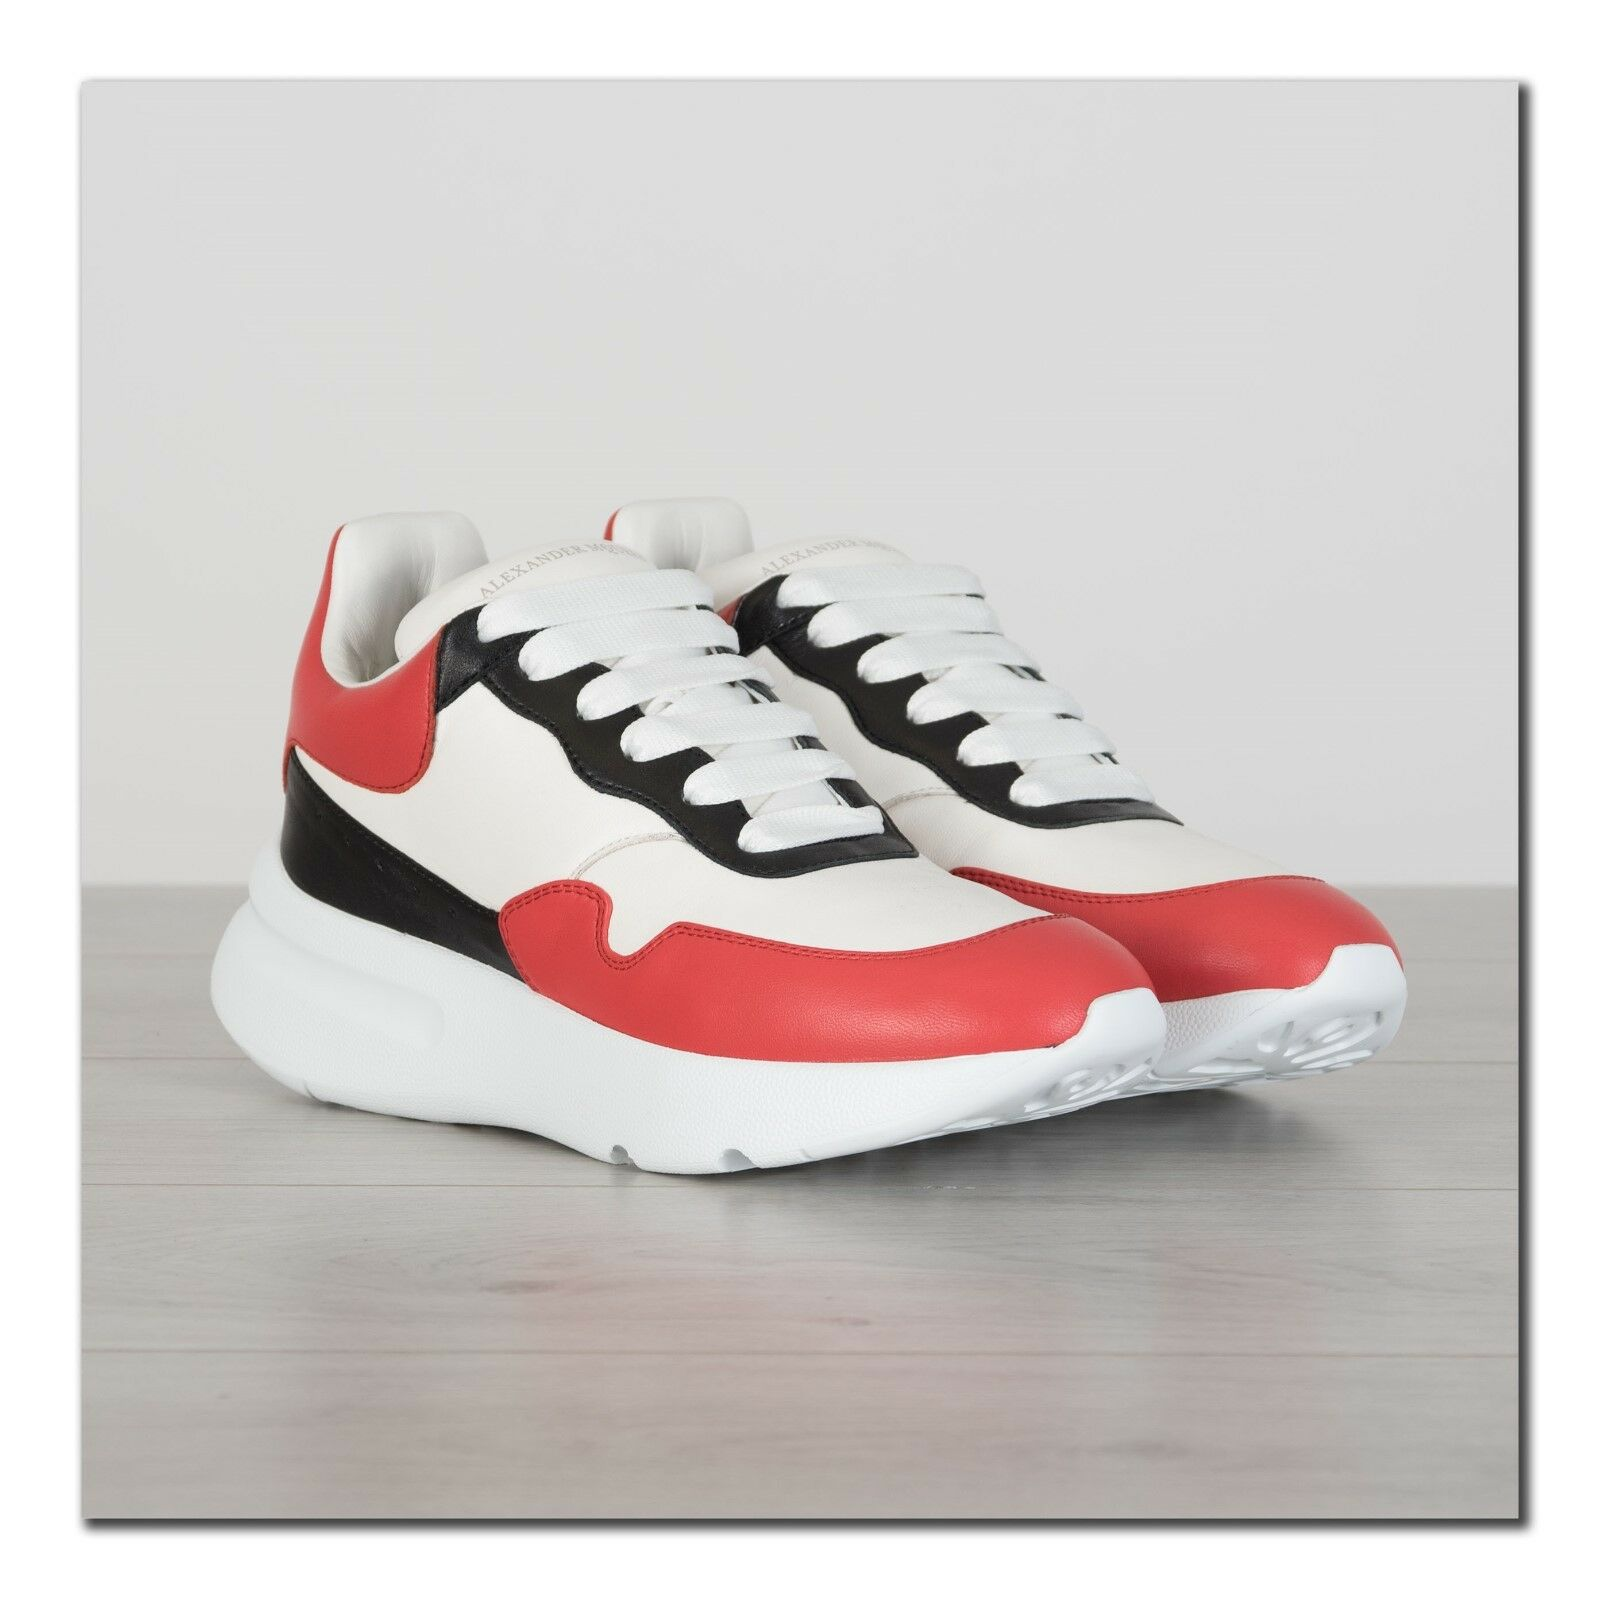 ALEXANDER MCQUEEN 590  New Oversized Sneakers In White, Red & Black Leather